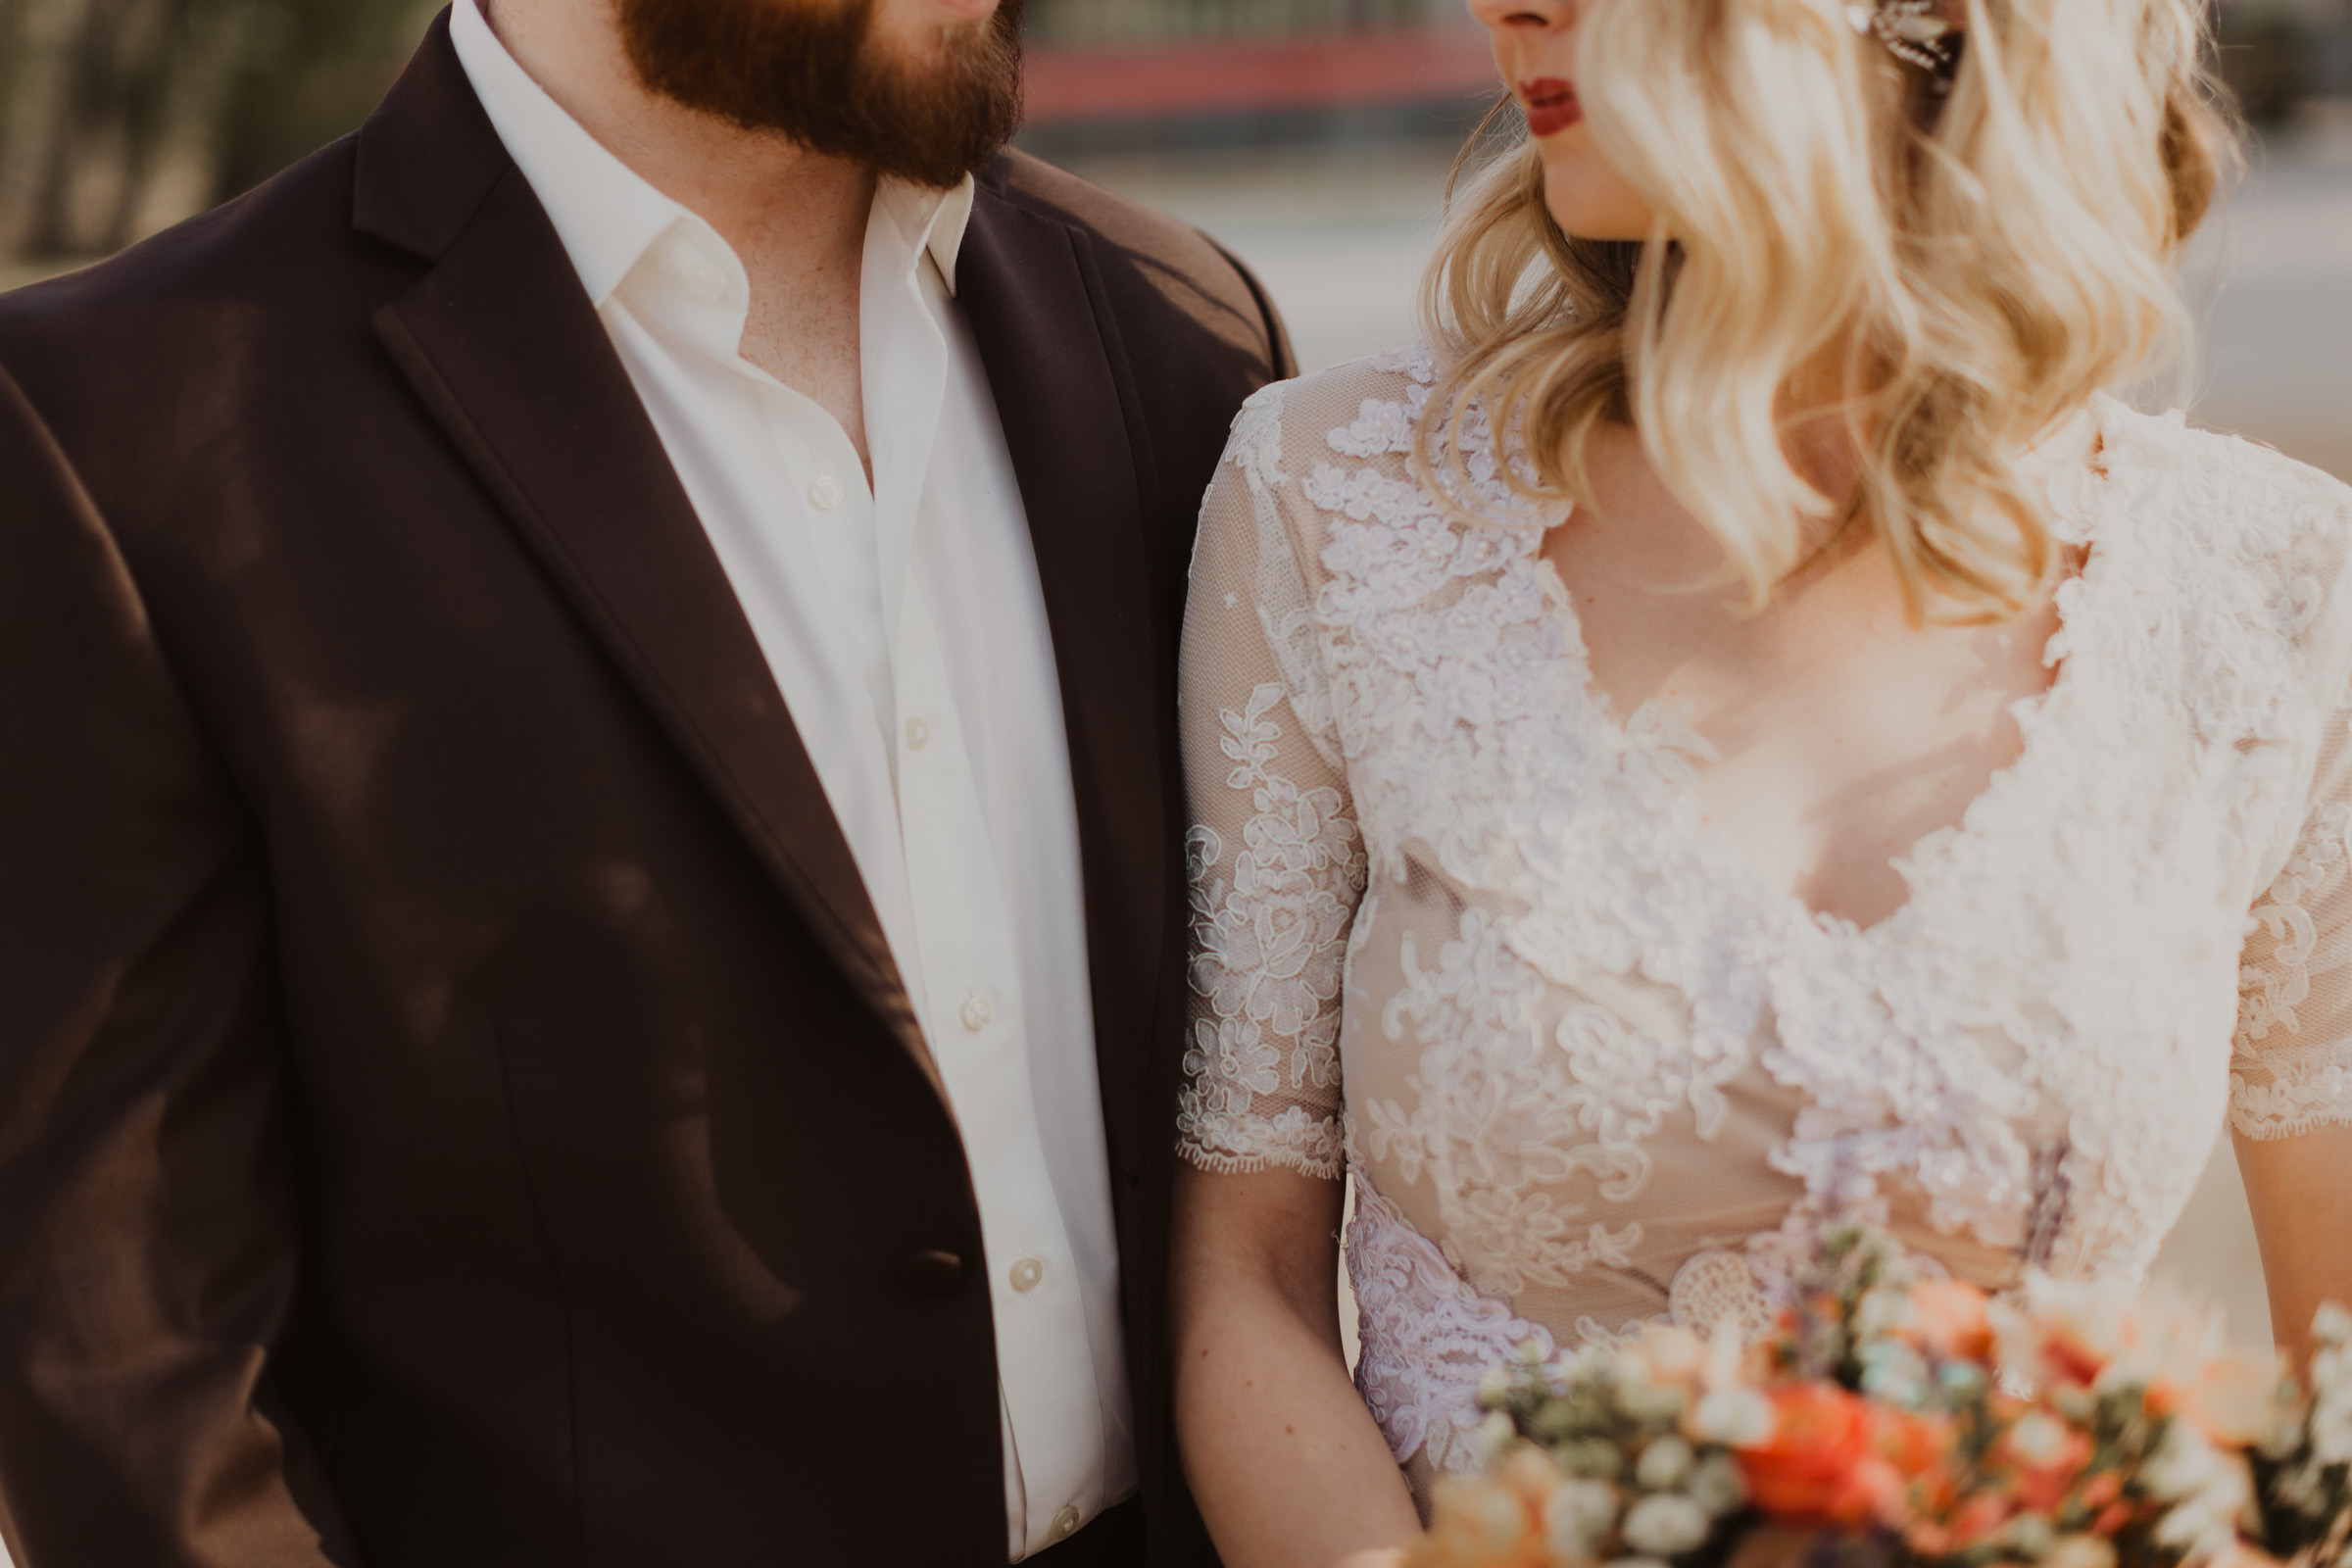 alyssa barletter photography styled shoot wedding inspiration kansas city west bottoms photographer motorcycle edgy intimate-33.jpg